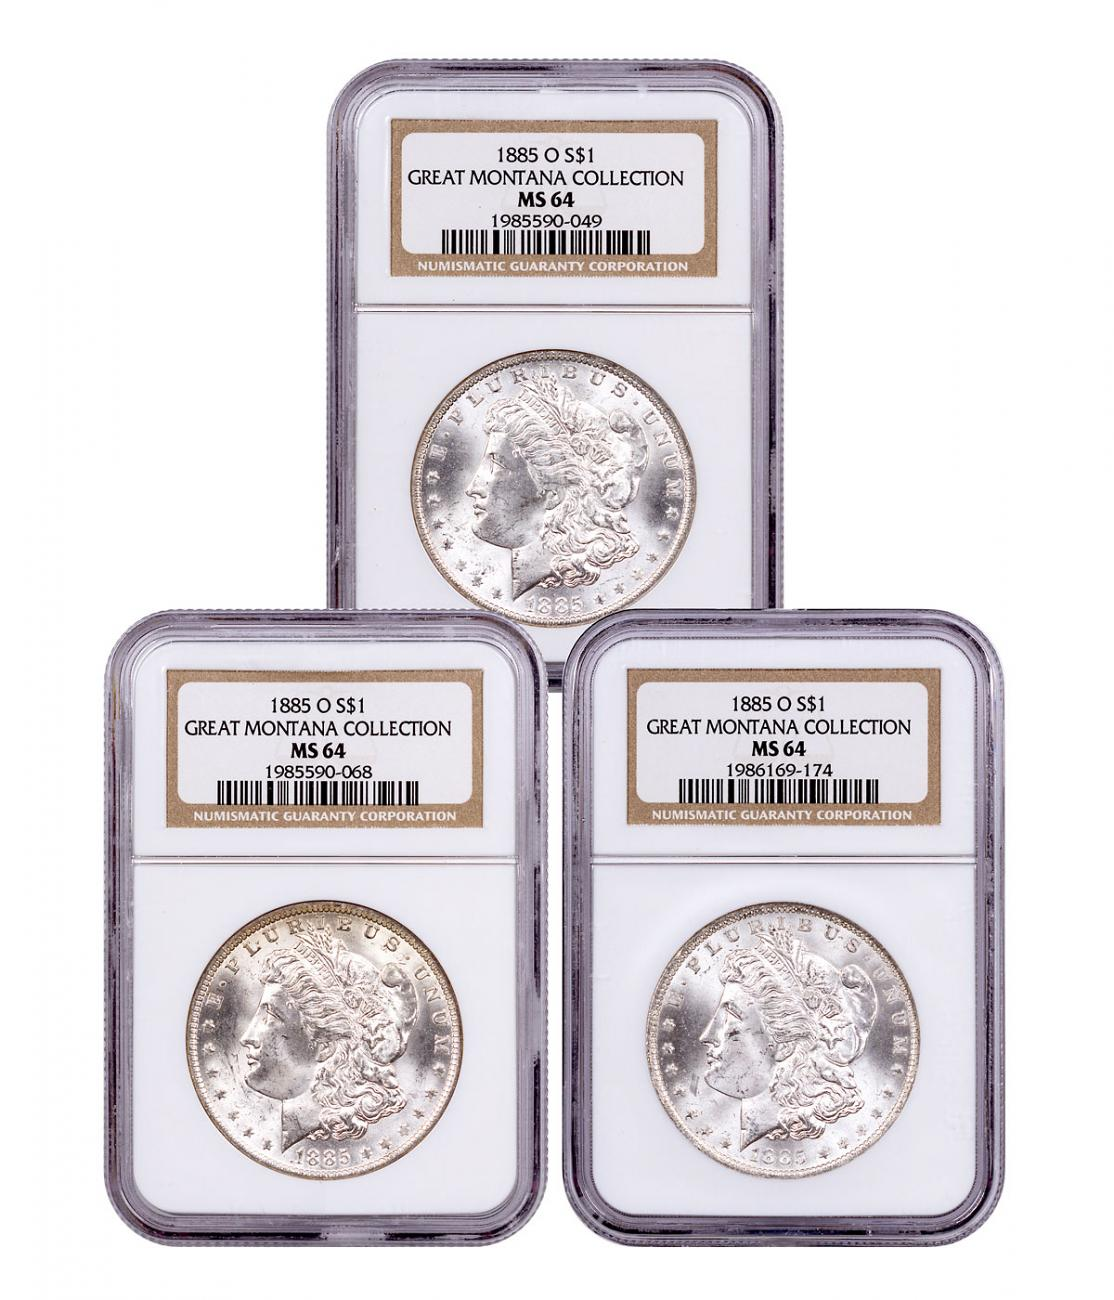 3-Coin Set - 1885-O Morgan Silver Dollar From the Great Montana Collection NGC MS64 Toned